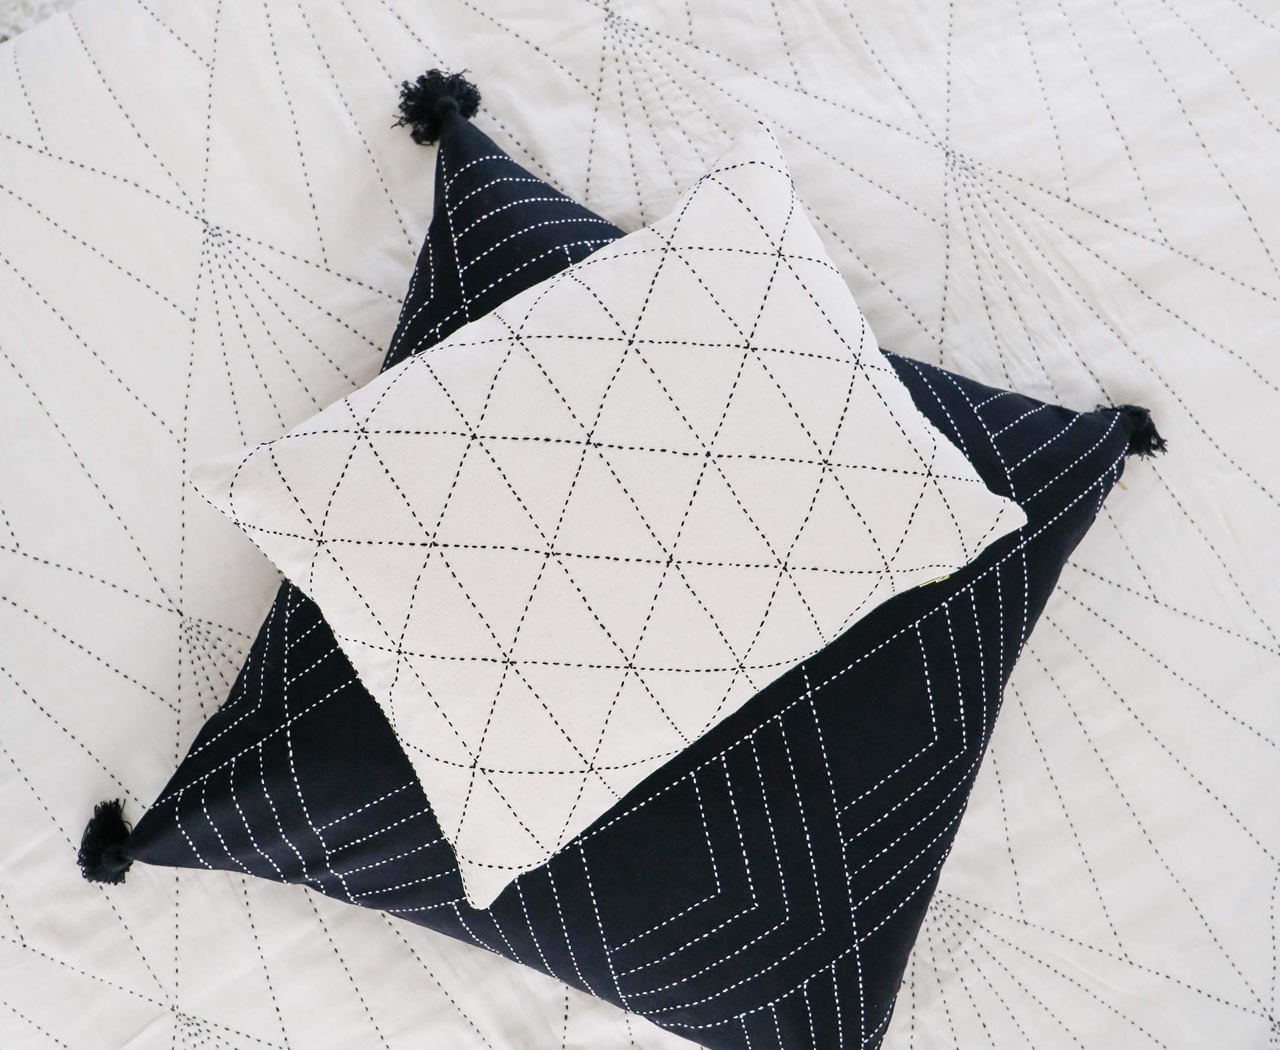 Anchal Project Makes Modern Geometric Textiles While Empowering Women